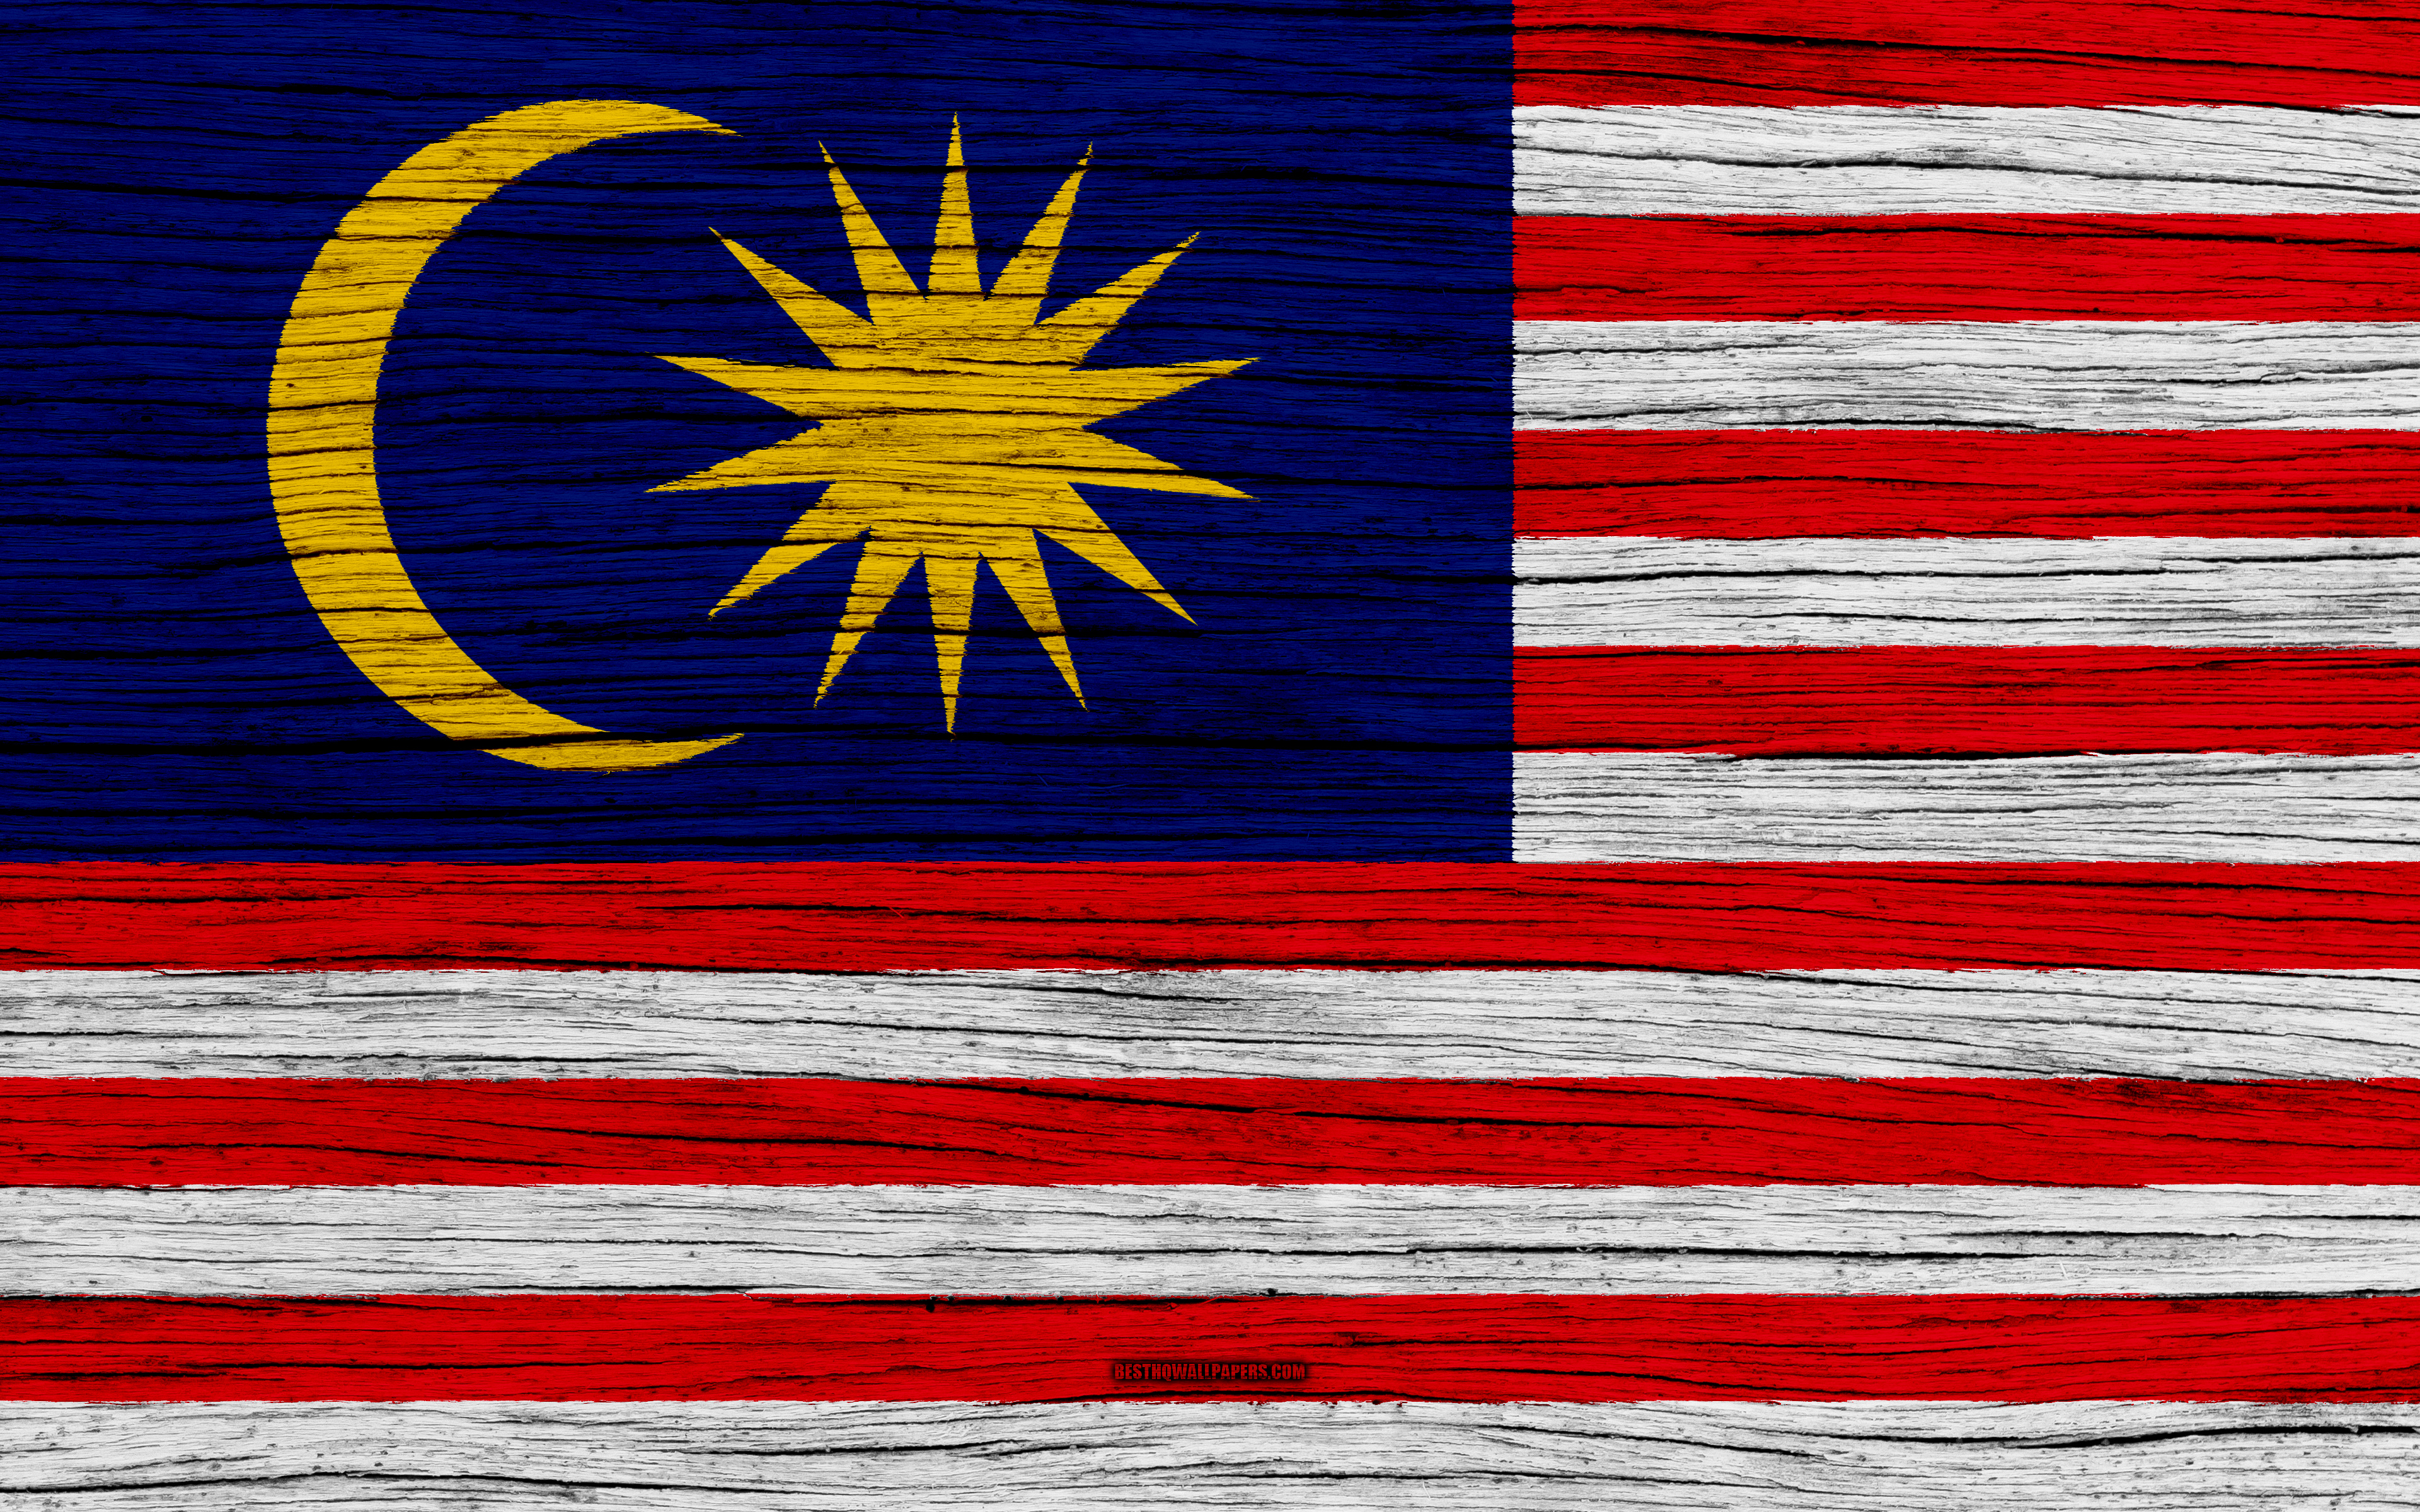 Download wallpapers Flag of Malaysia 4k Asia wooden texture 3840x2400